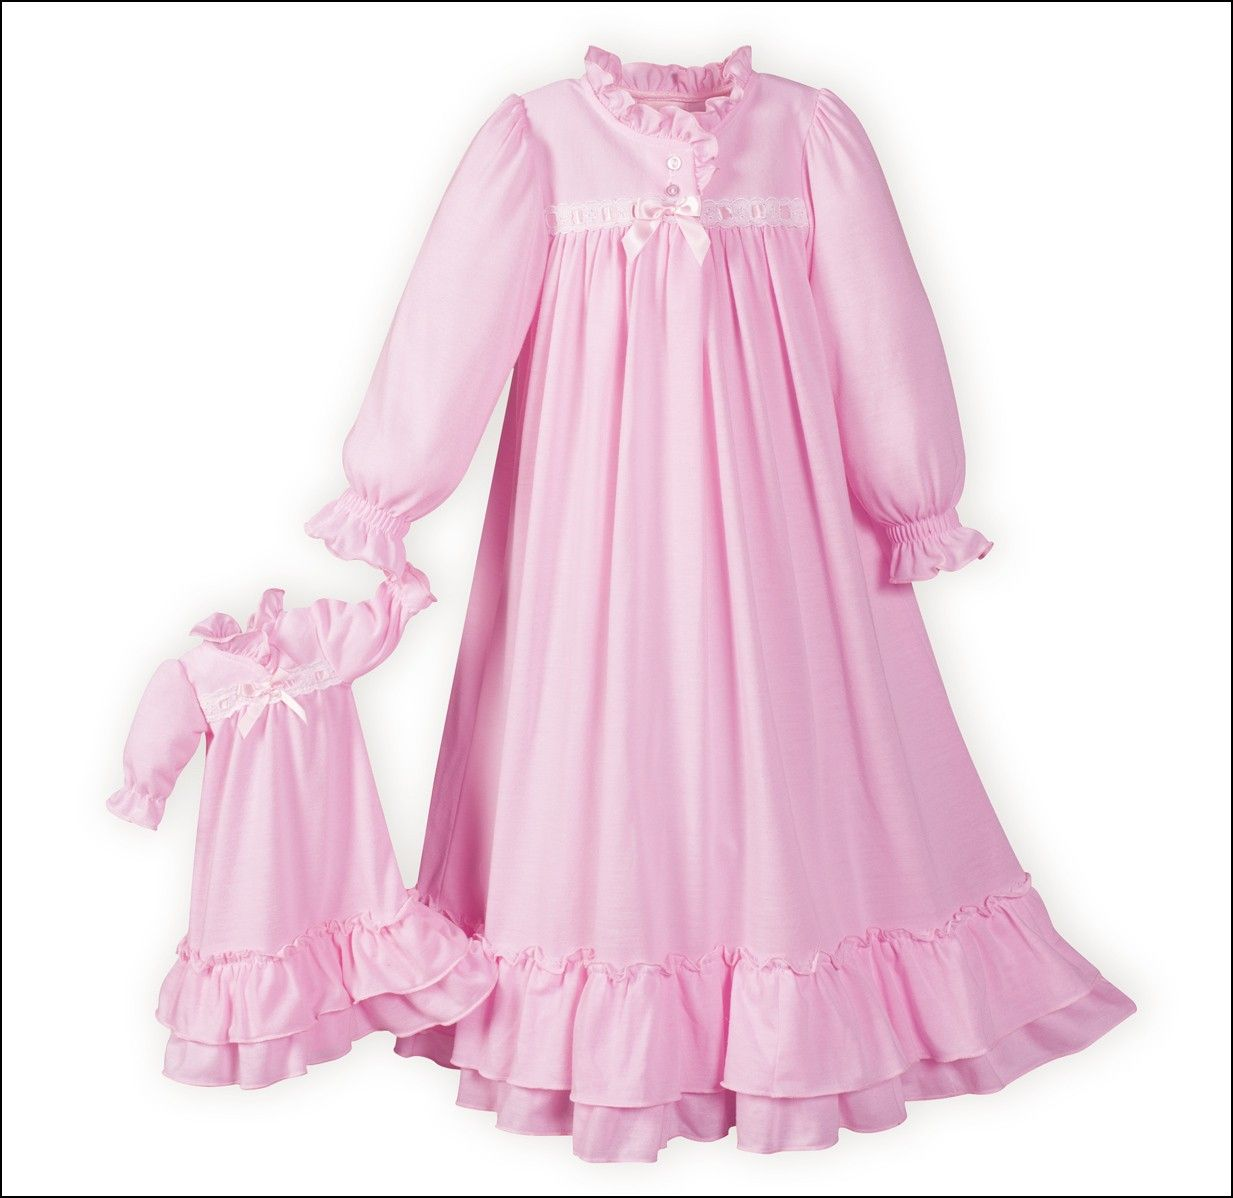 Clara s nightgown pink nutcracker clara nightgown made in usa